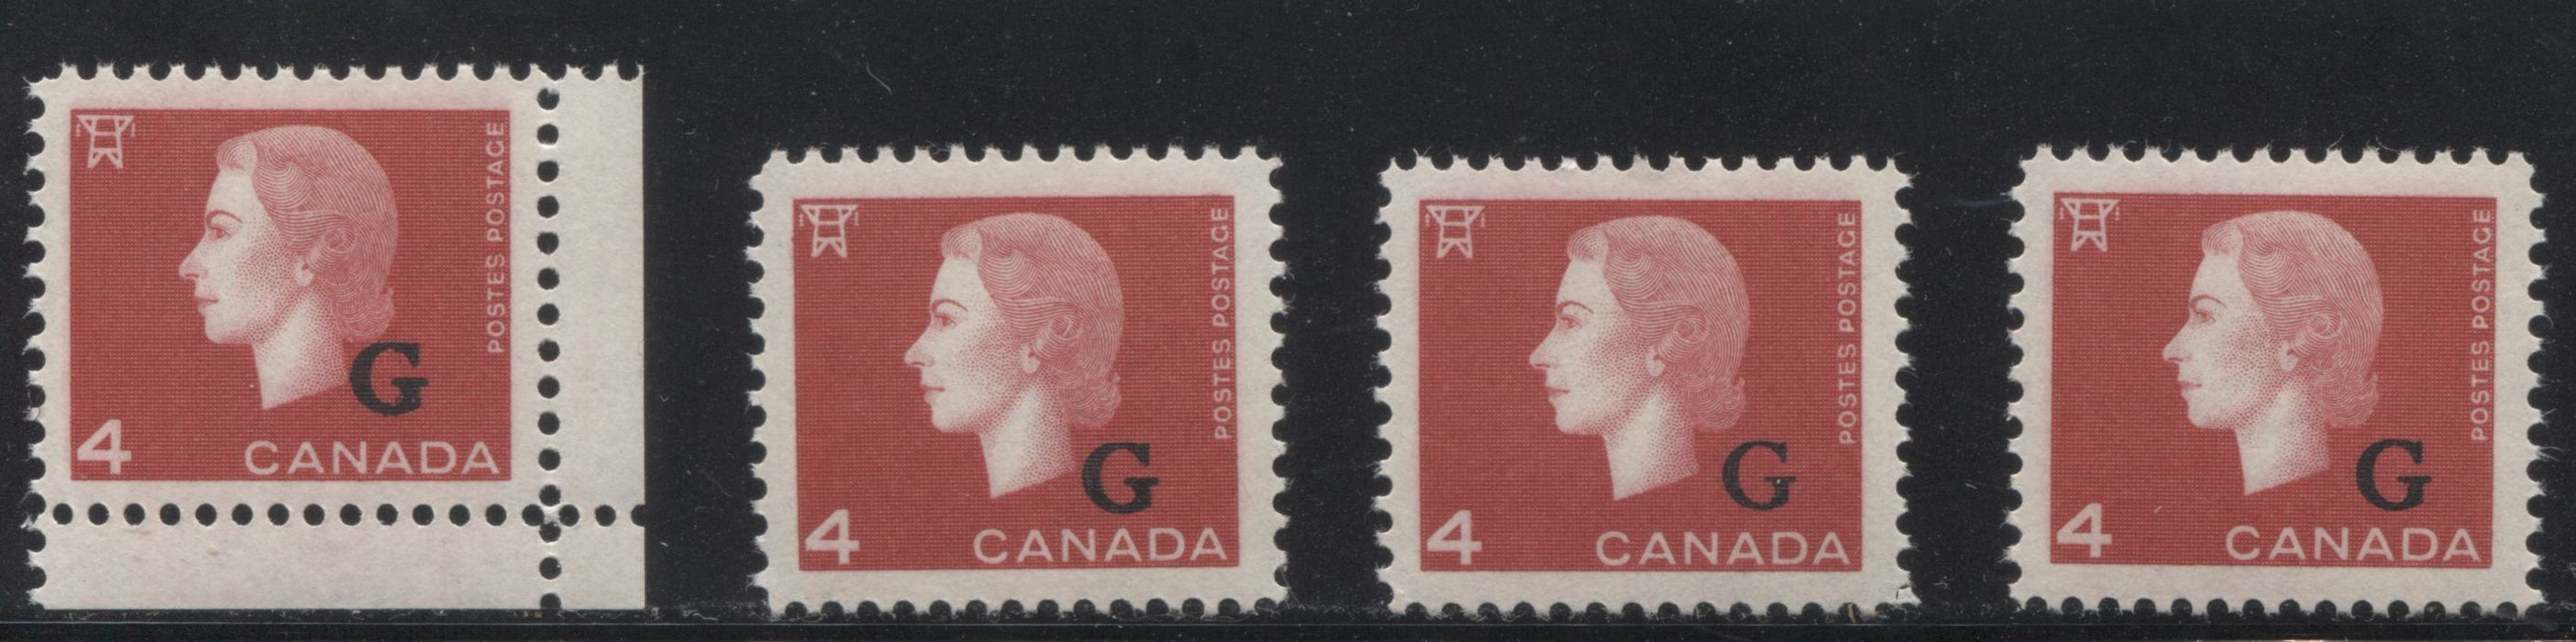 "Canada #O48 4c Bright Red Queen Elizabeth II, 1962-1967 Cameo Issue, a Group of 4 VFNH Singles With ""G"" Overprint, Each a Different Perf"